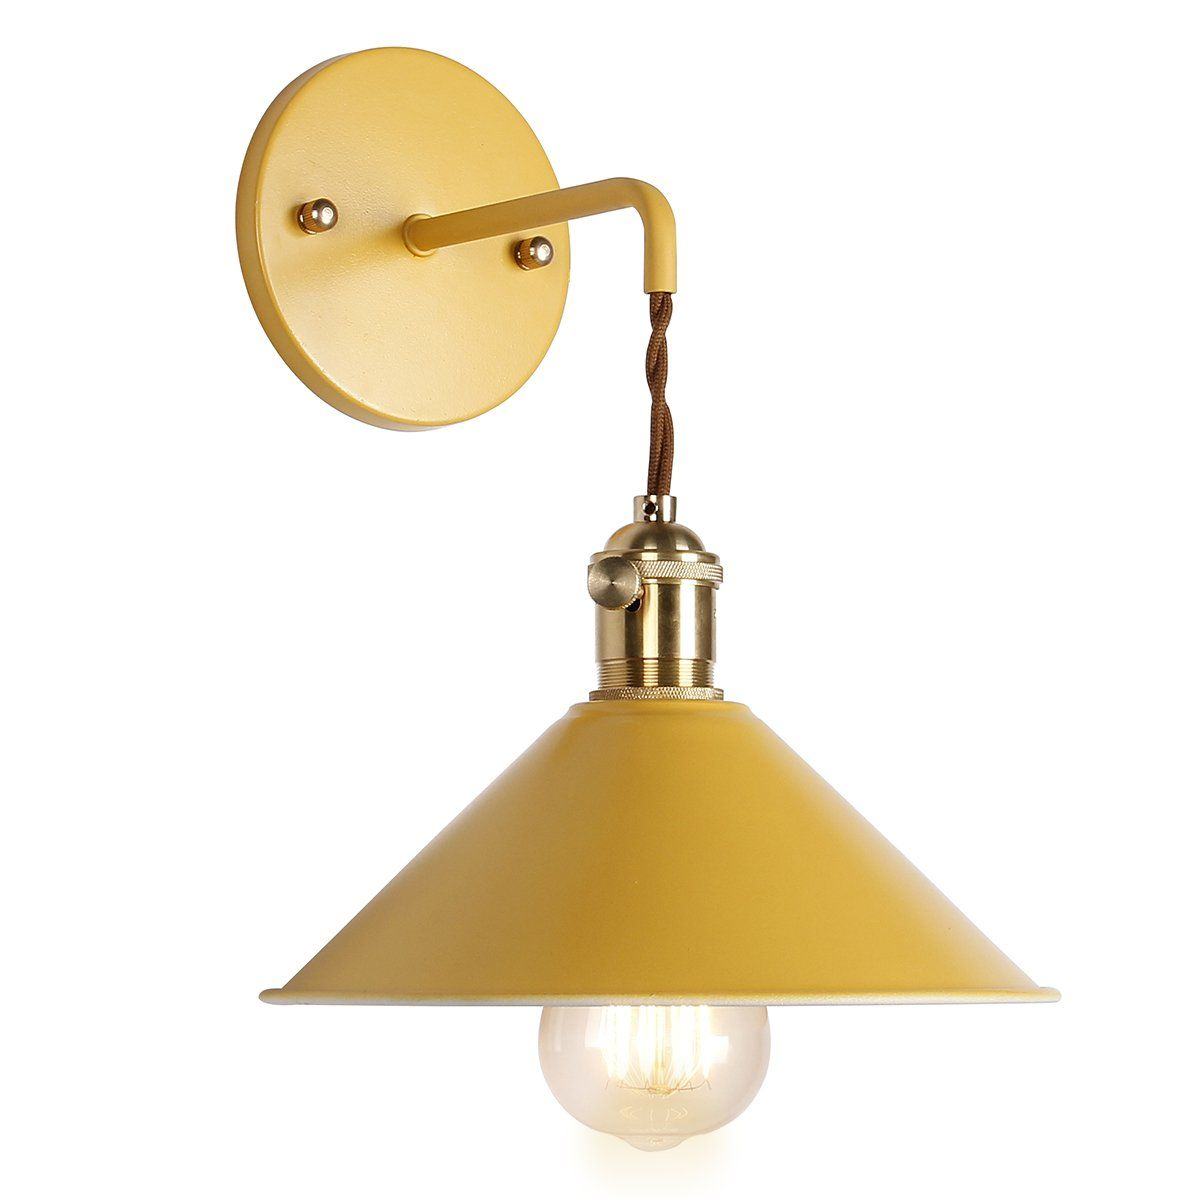 Iyoee Wall Sconce Lamps Lighting Fixture With On Off Switch Khaki